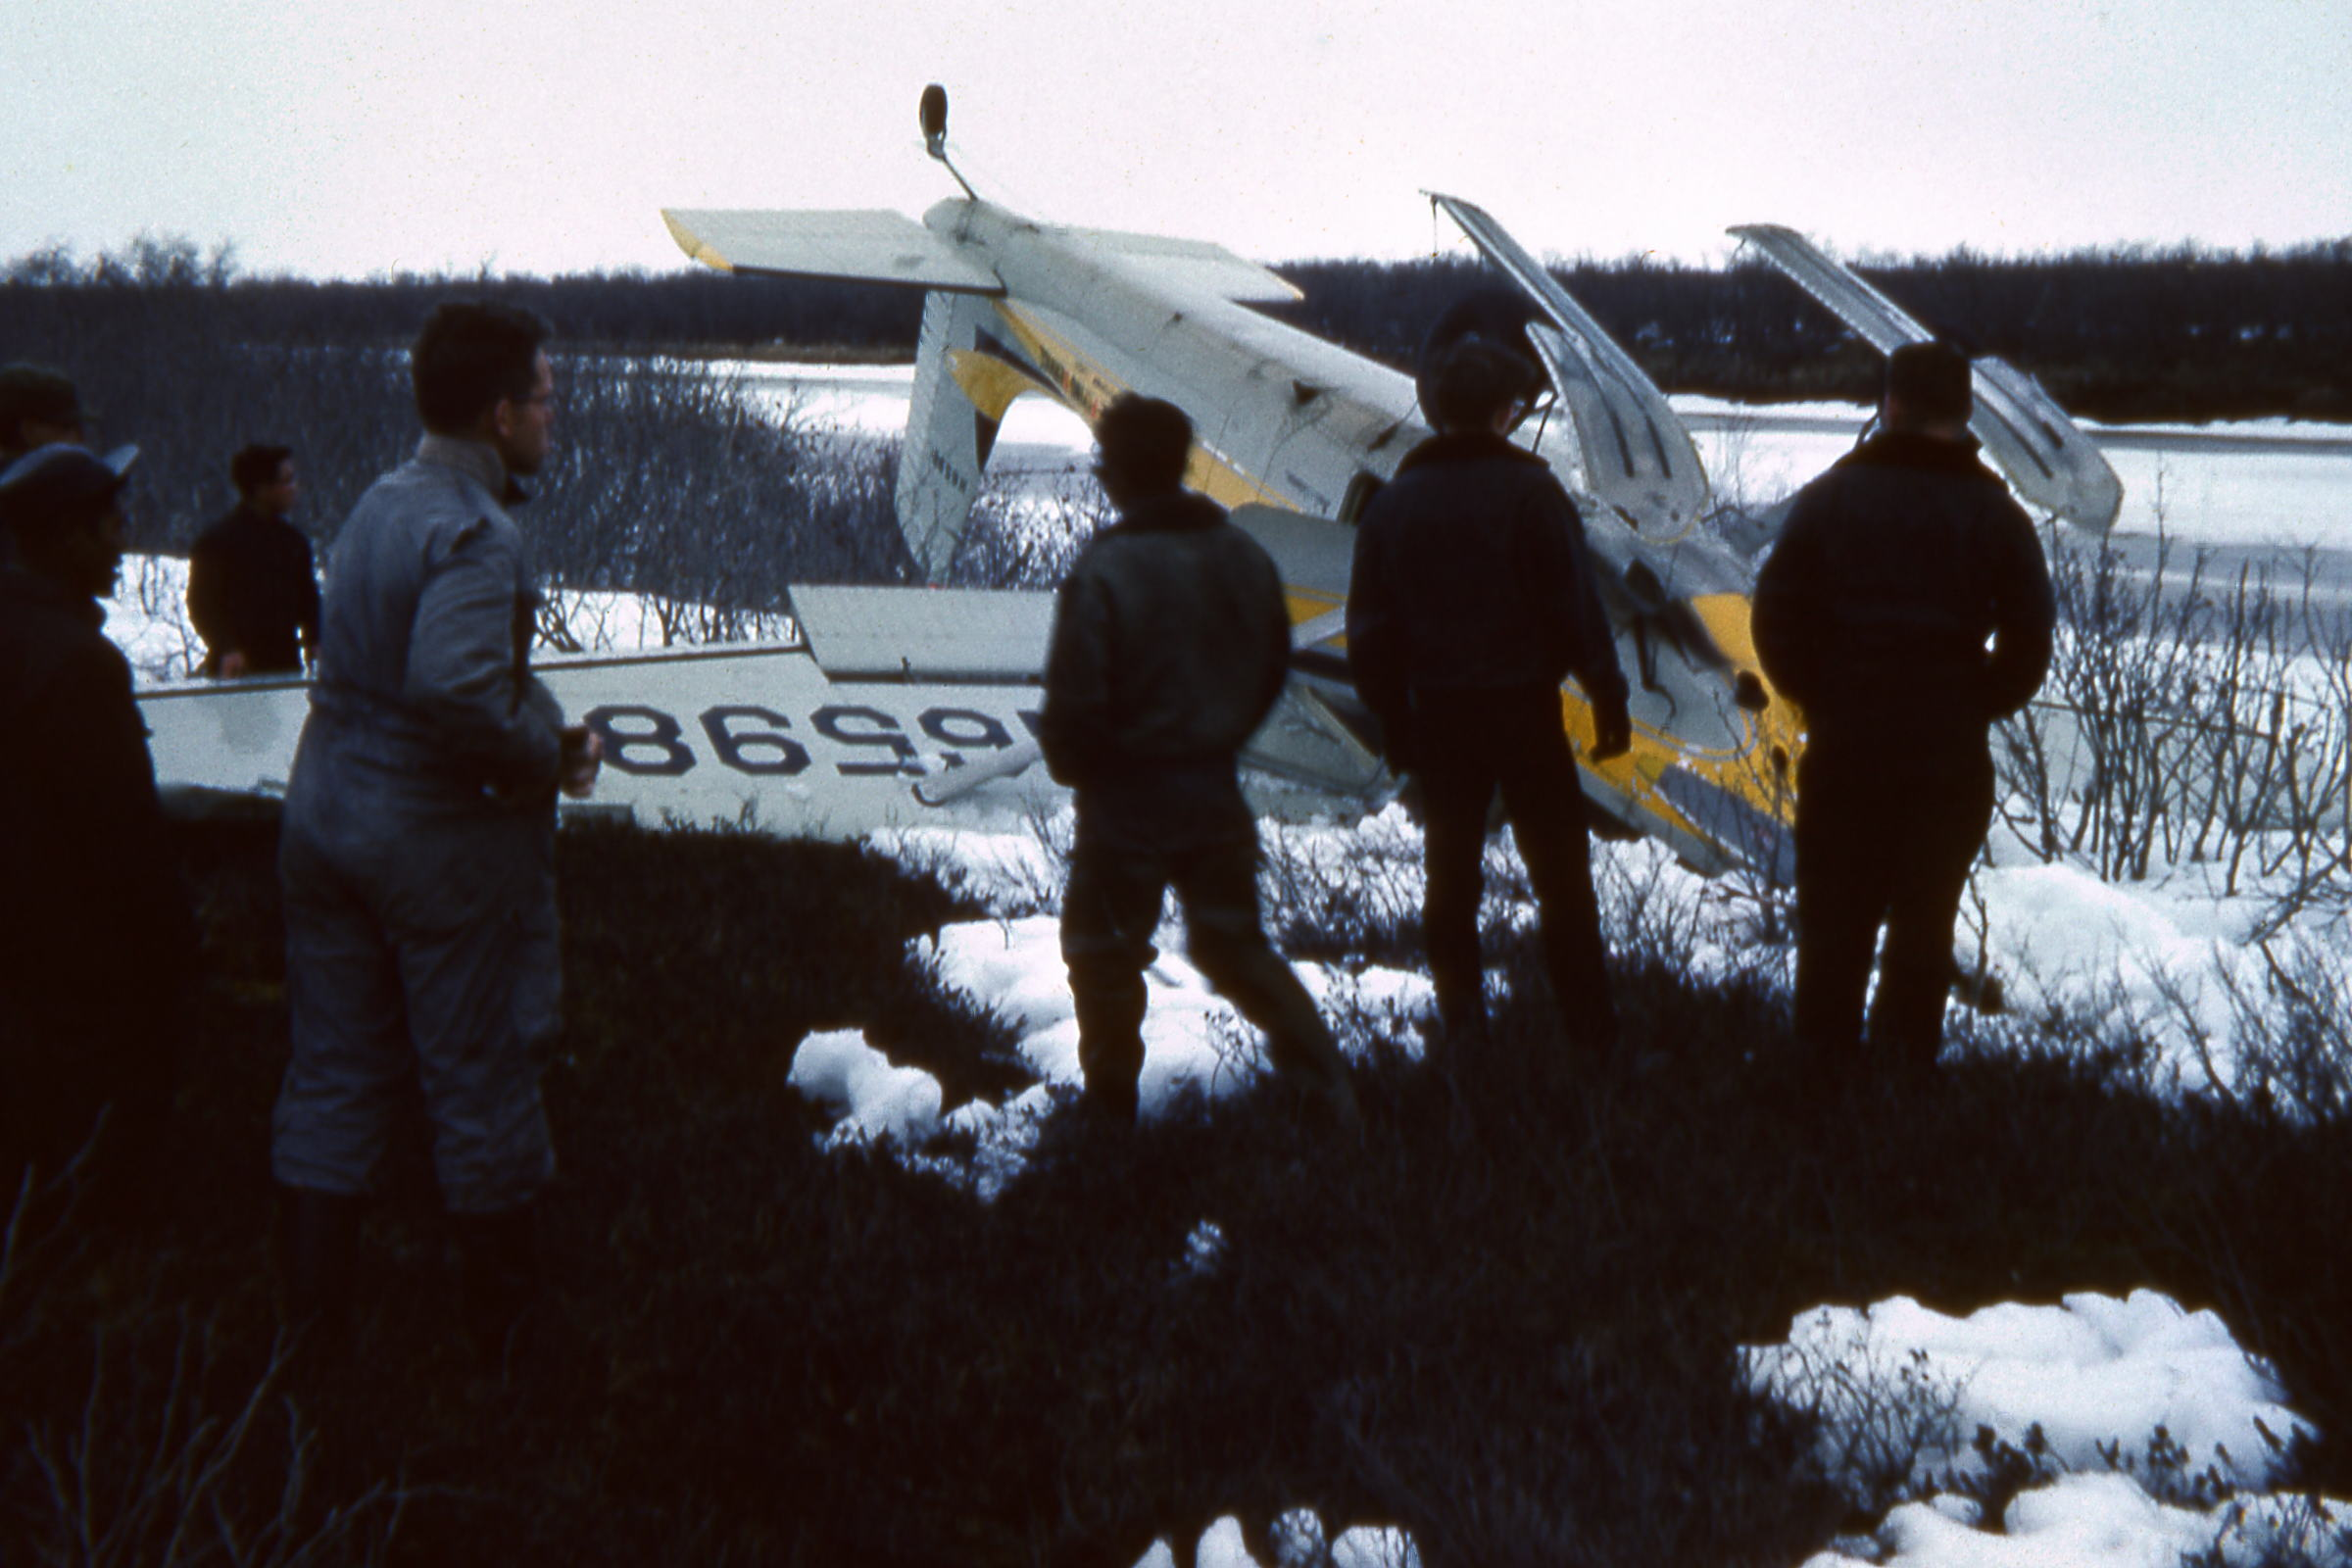 1964 Ketchum Air accident